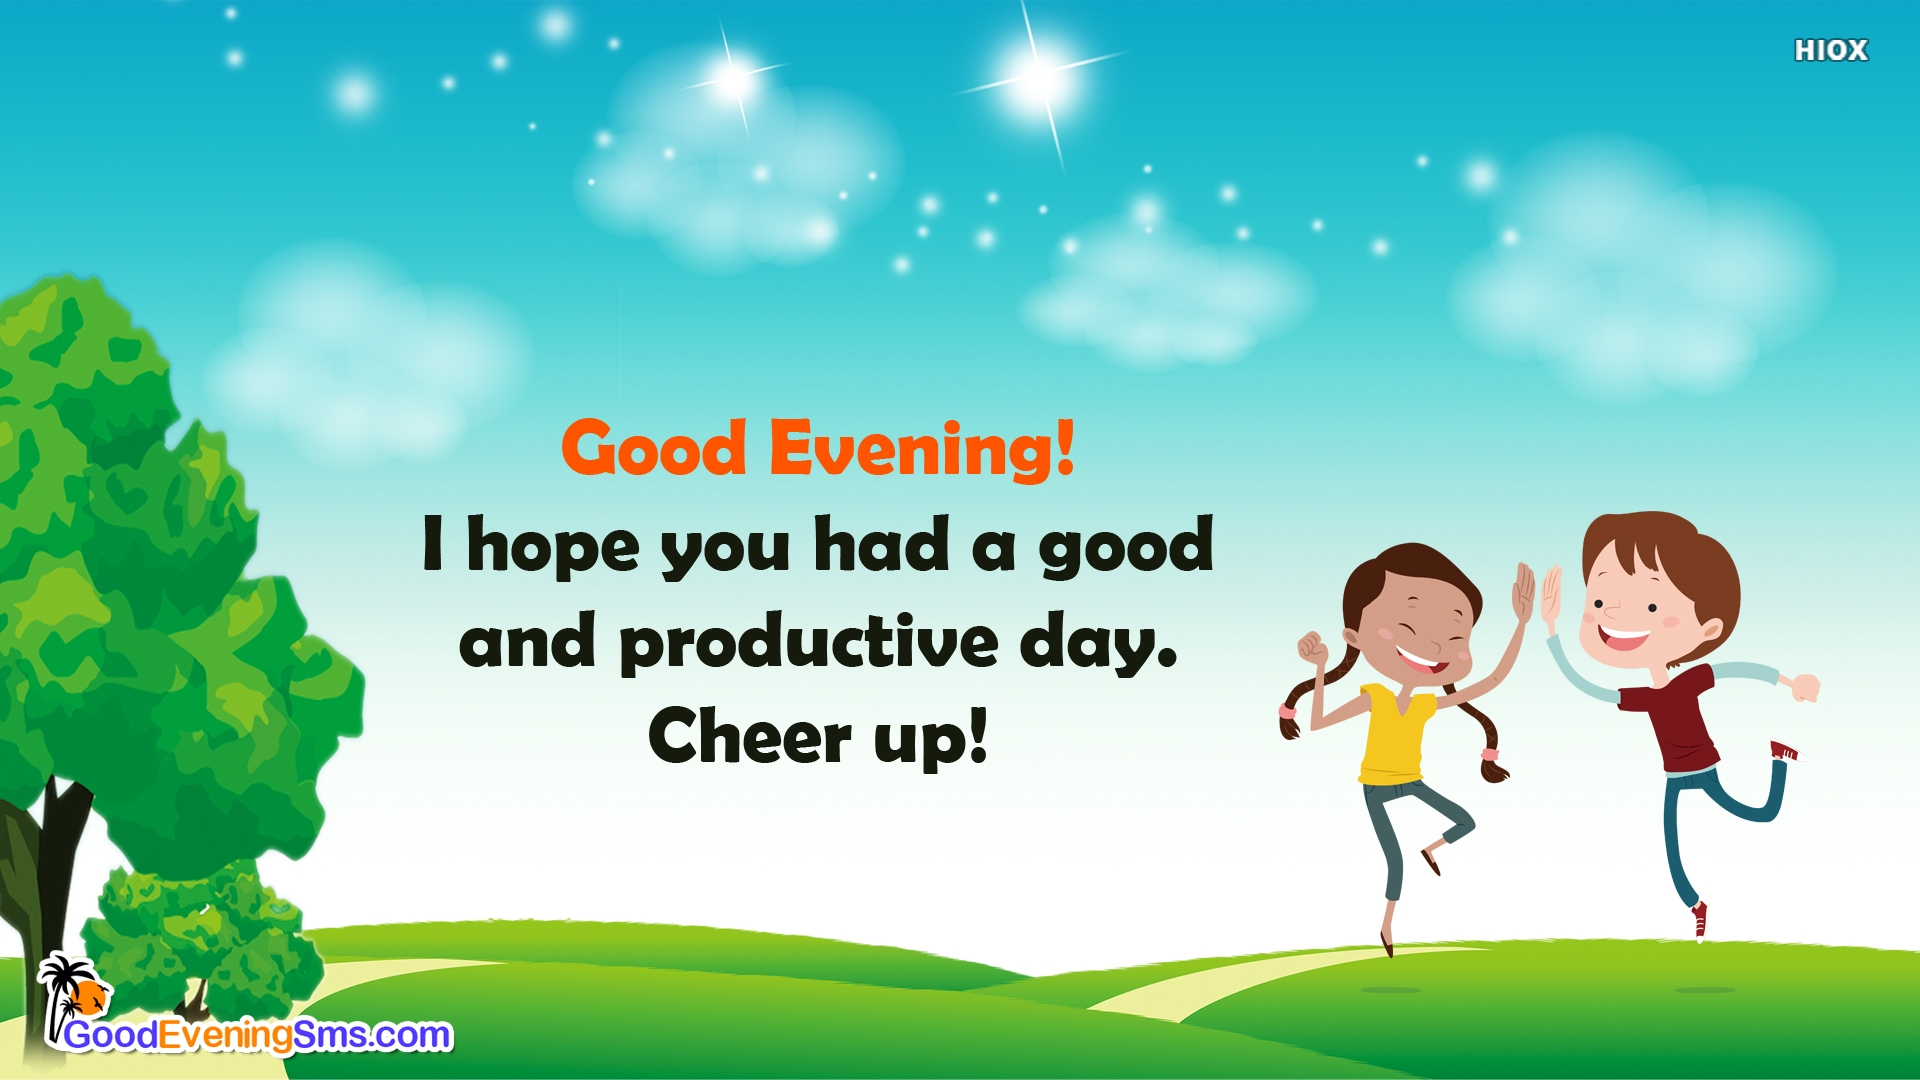 Good Evening! I Hope You Had A Good and Productive Day. Cheer Up!